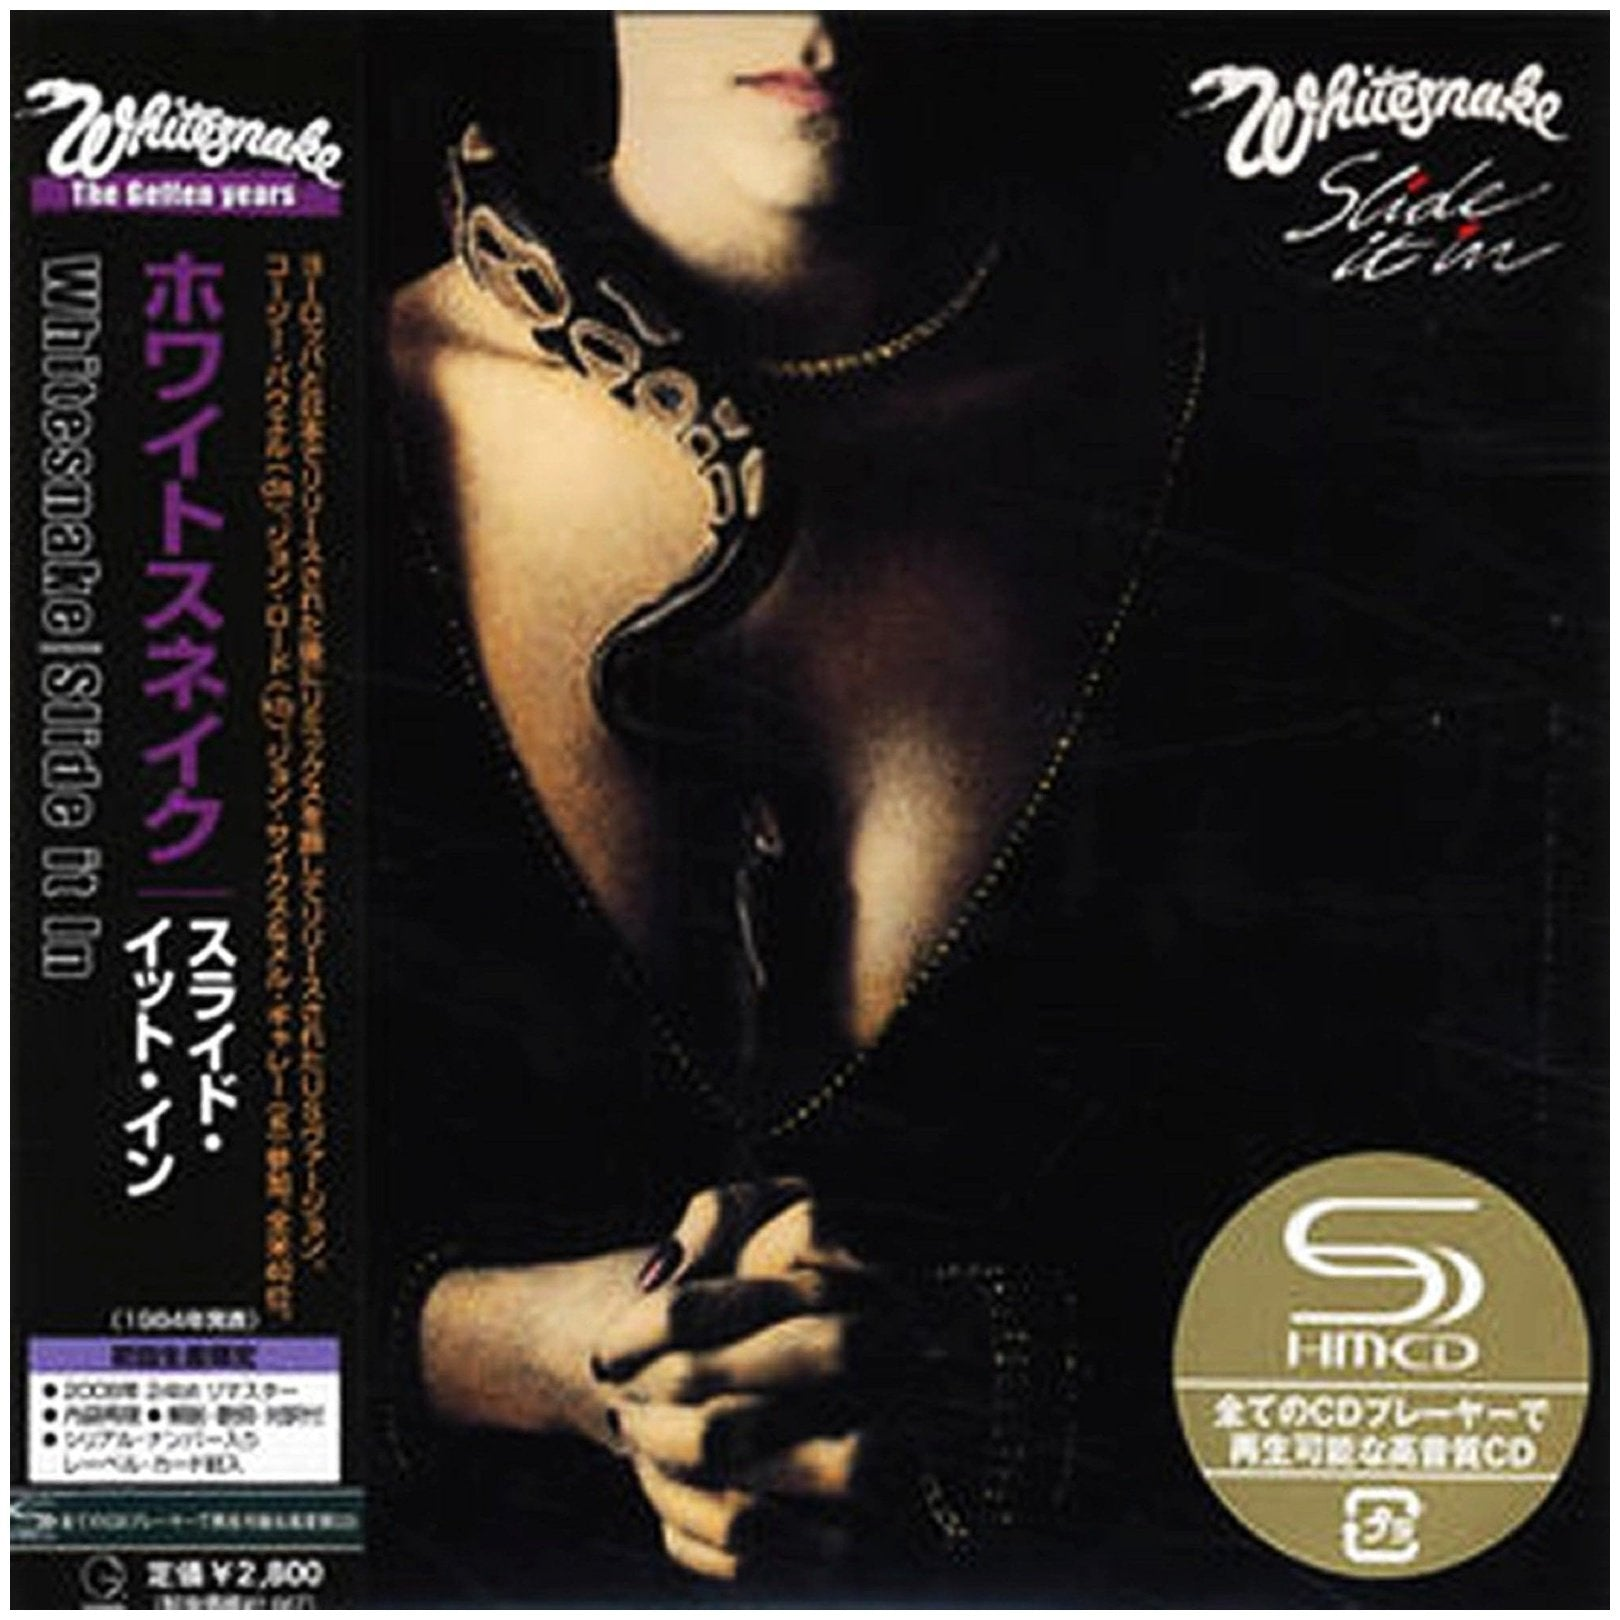 Whitesnake - Whitesnake - Slide It In - Japan Mini Lp Shm - Uicy-93463 - Cd